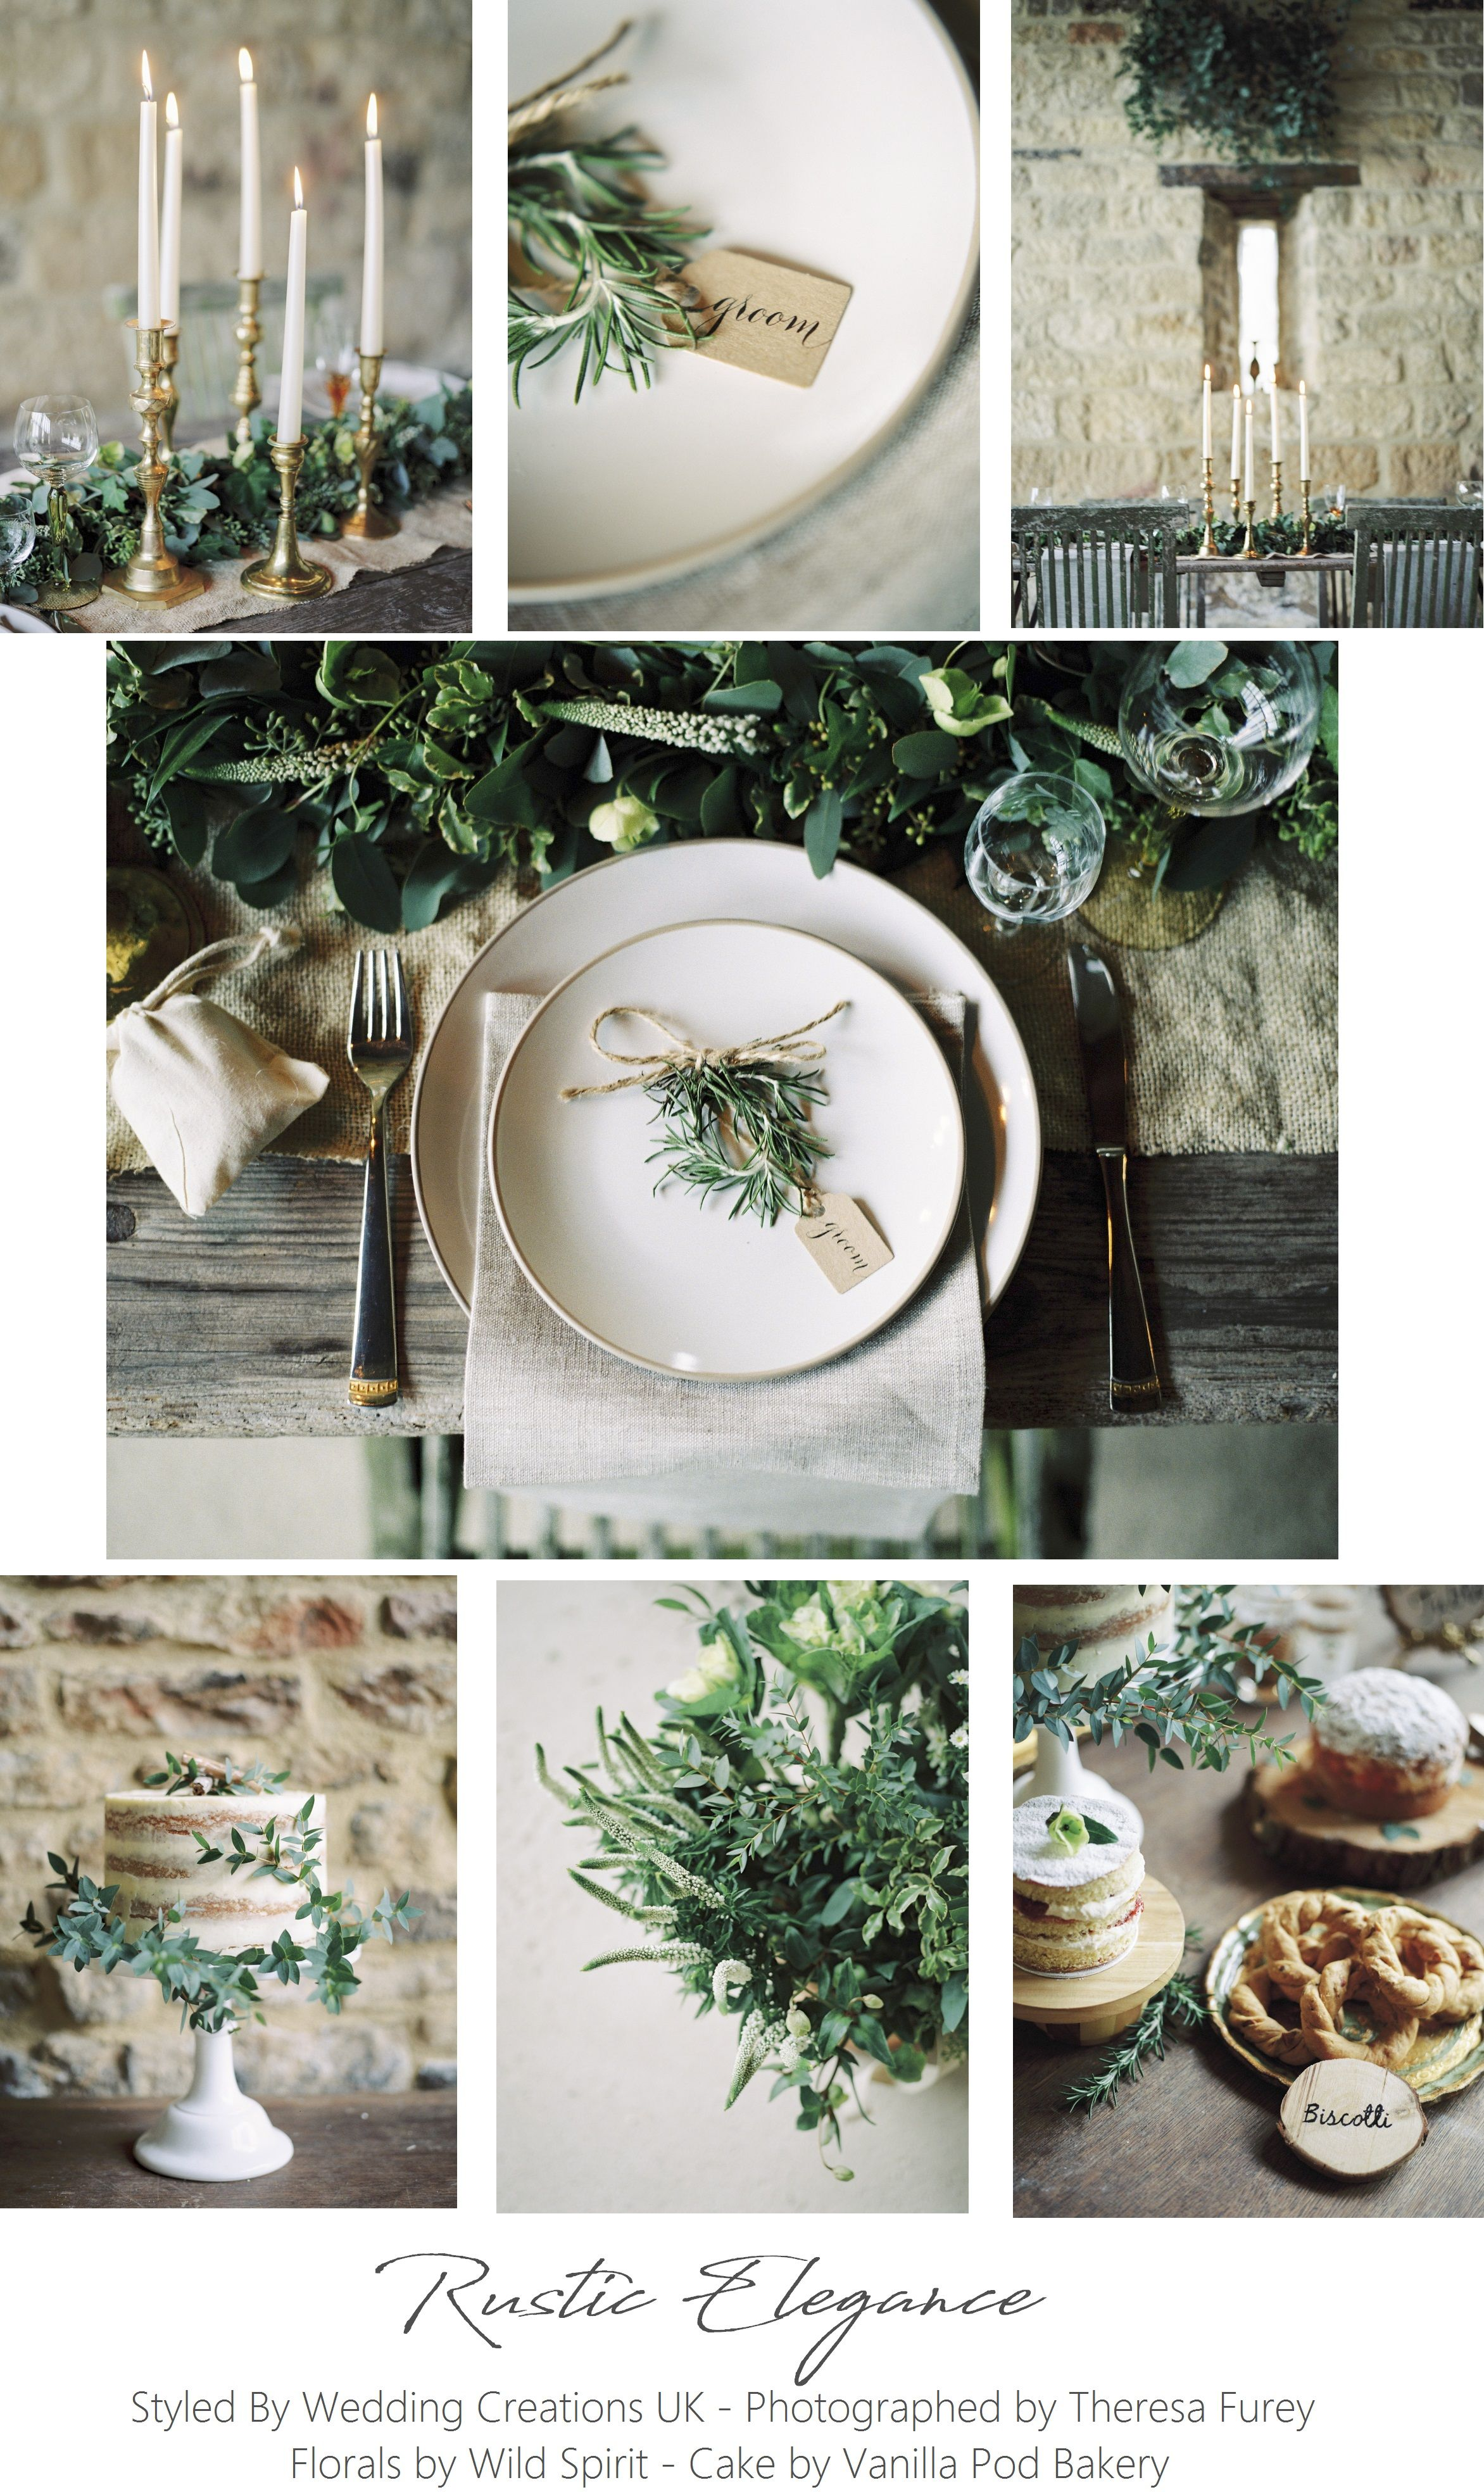 Rustic Elegance Using Foliage And Natural Tones Styled By